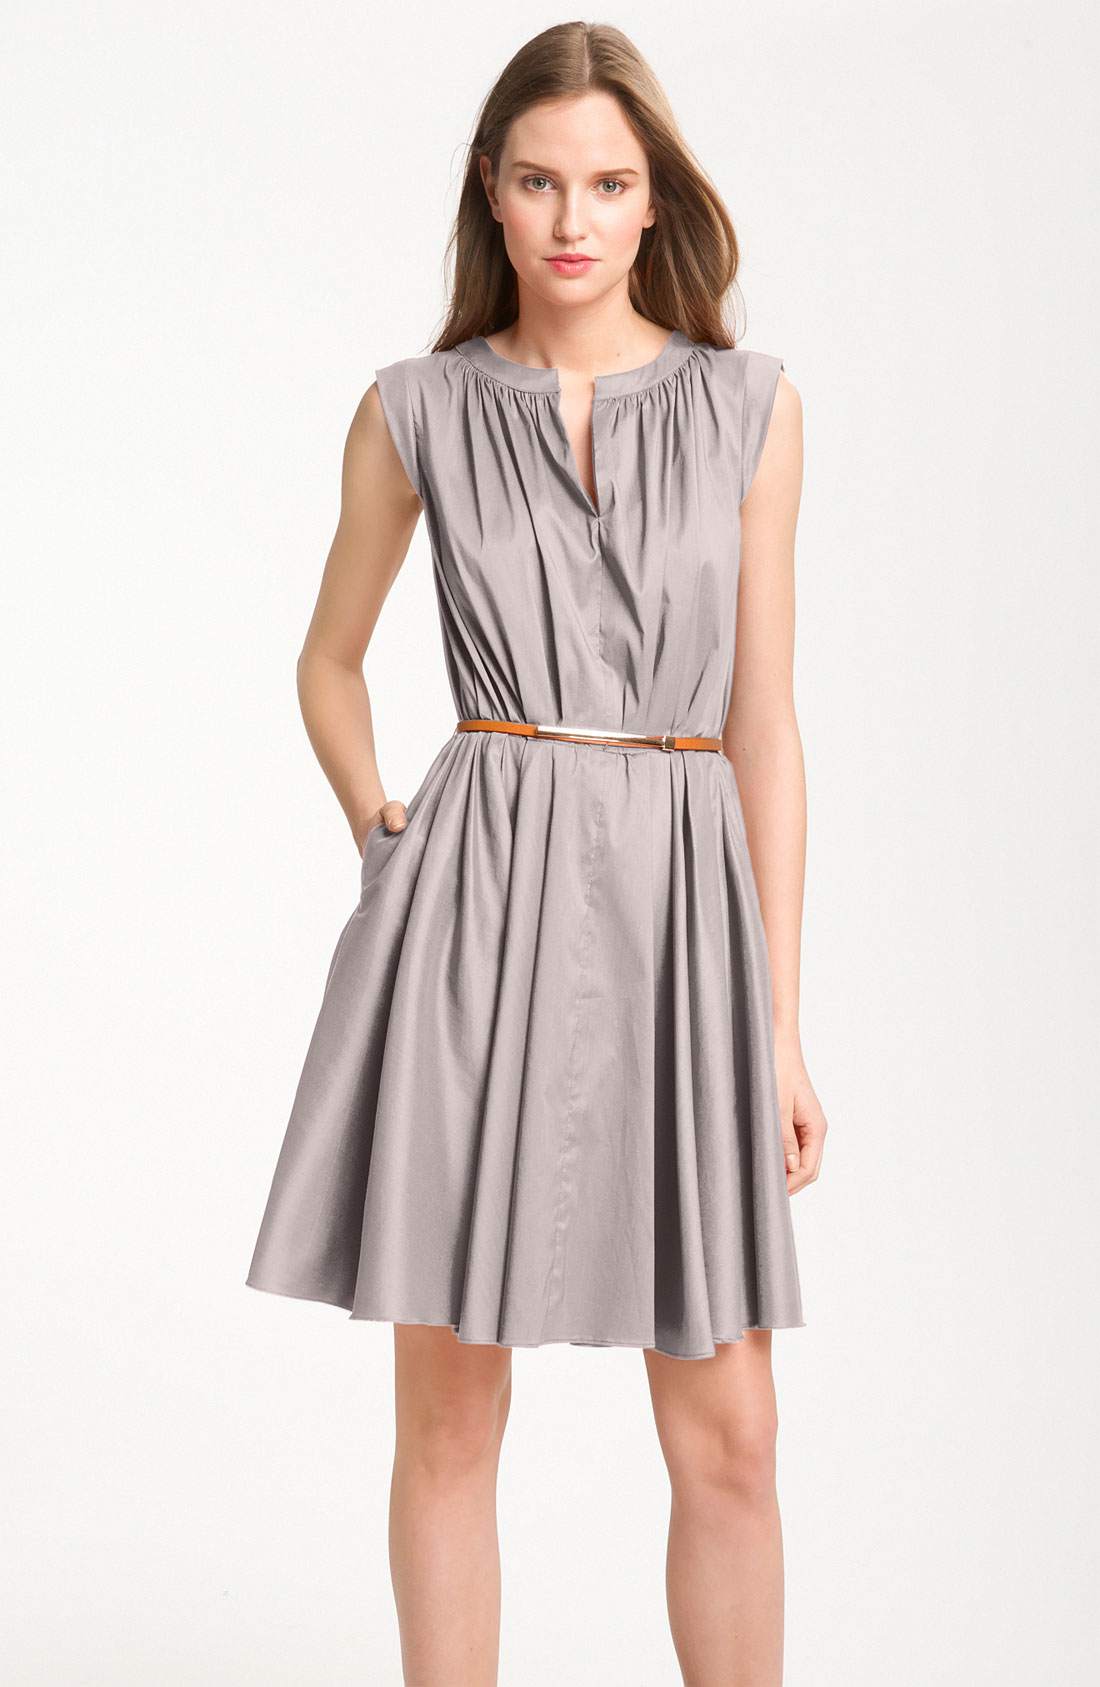 Fall wedding guest dresses to inspire you sang maestro for Dresses for winter wedding guest